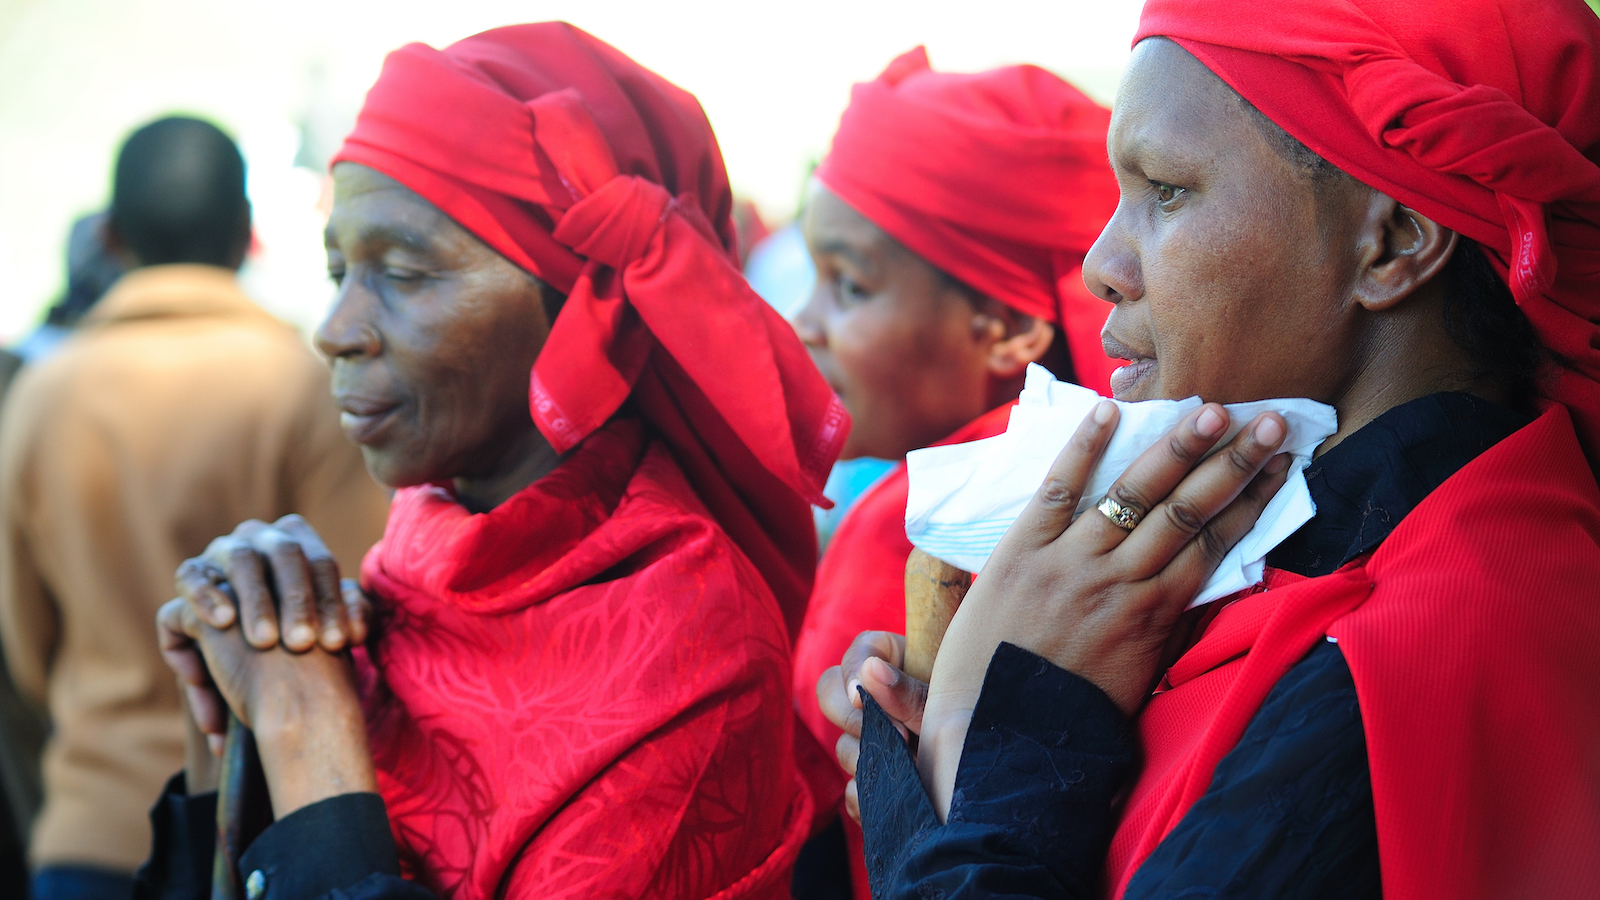 Christian women in South Africa